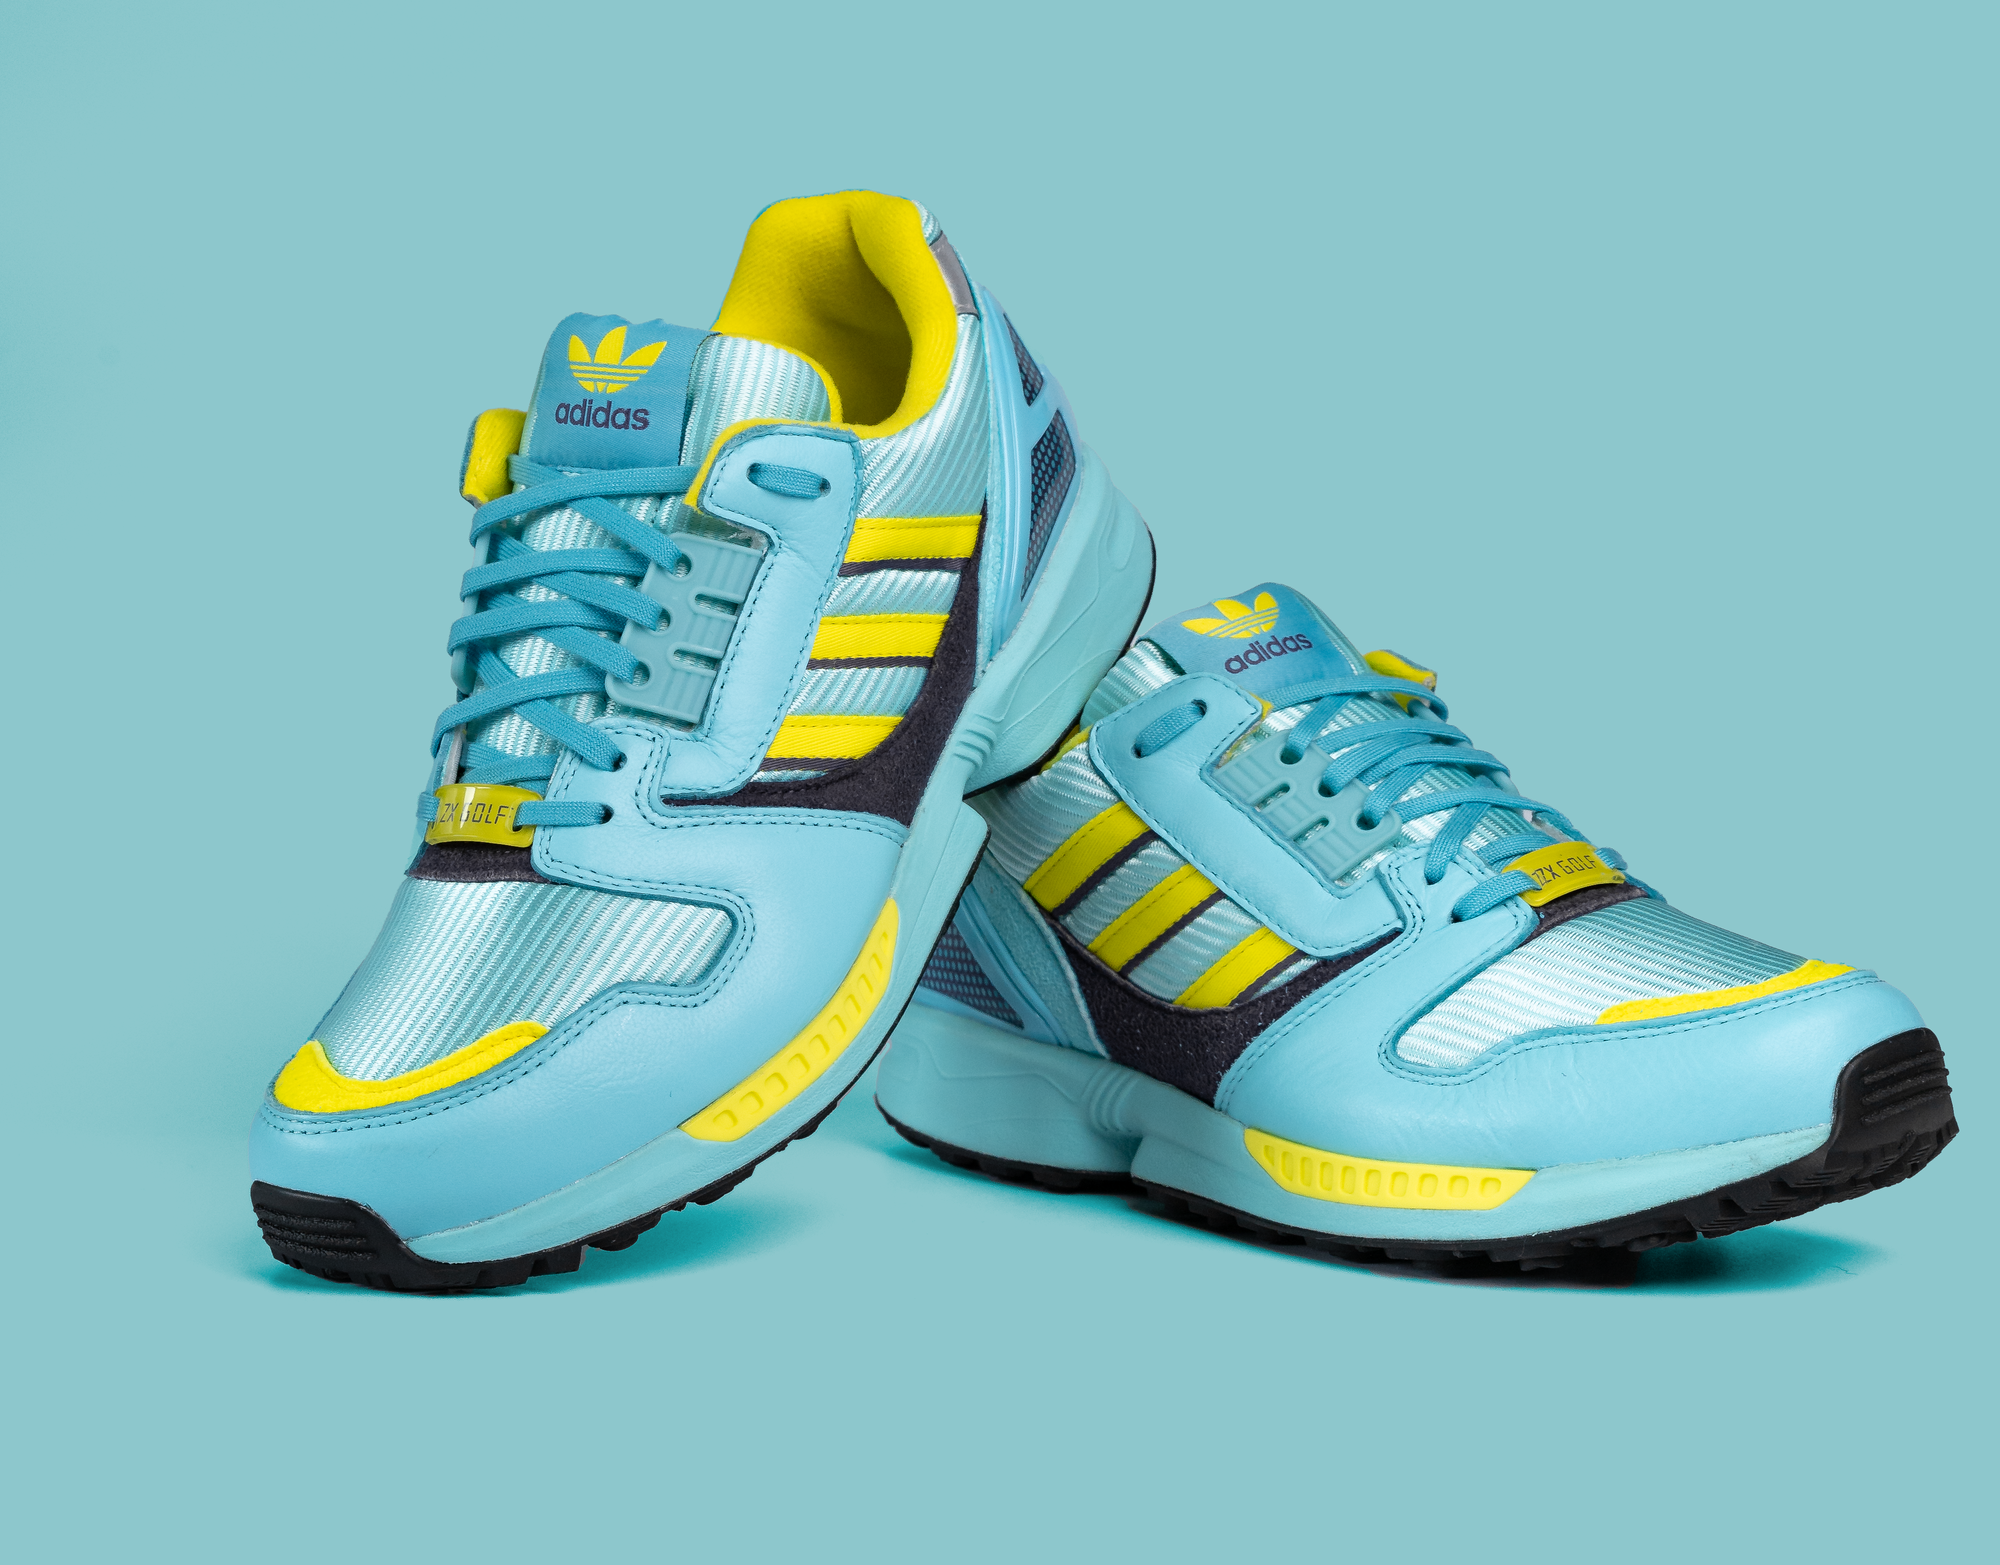 chaussures adidas zx8000